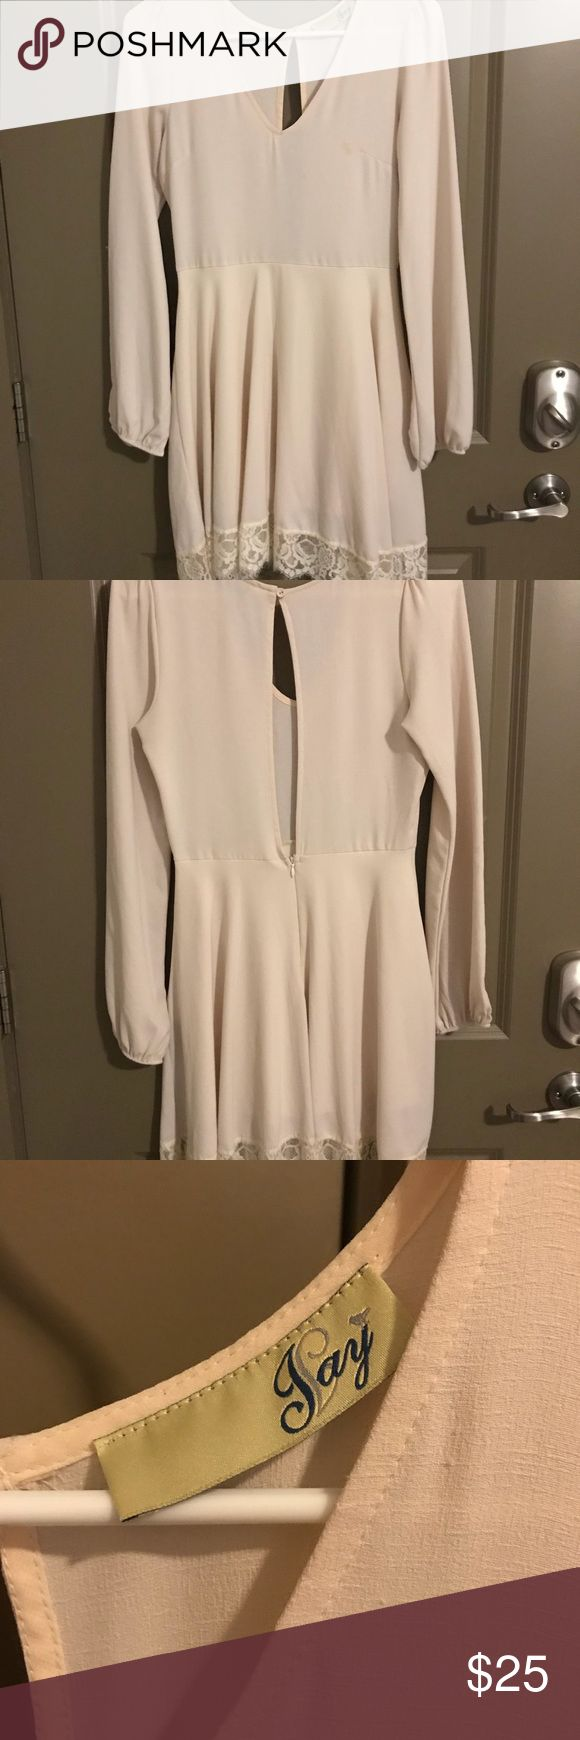 Cream long sleeve dress Cream long sleeve dress with beautiful lace trim and an open back. Only worn one time for a banquet. Very small stain on the breast Dresses